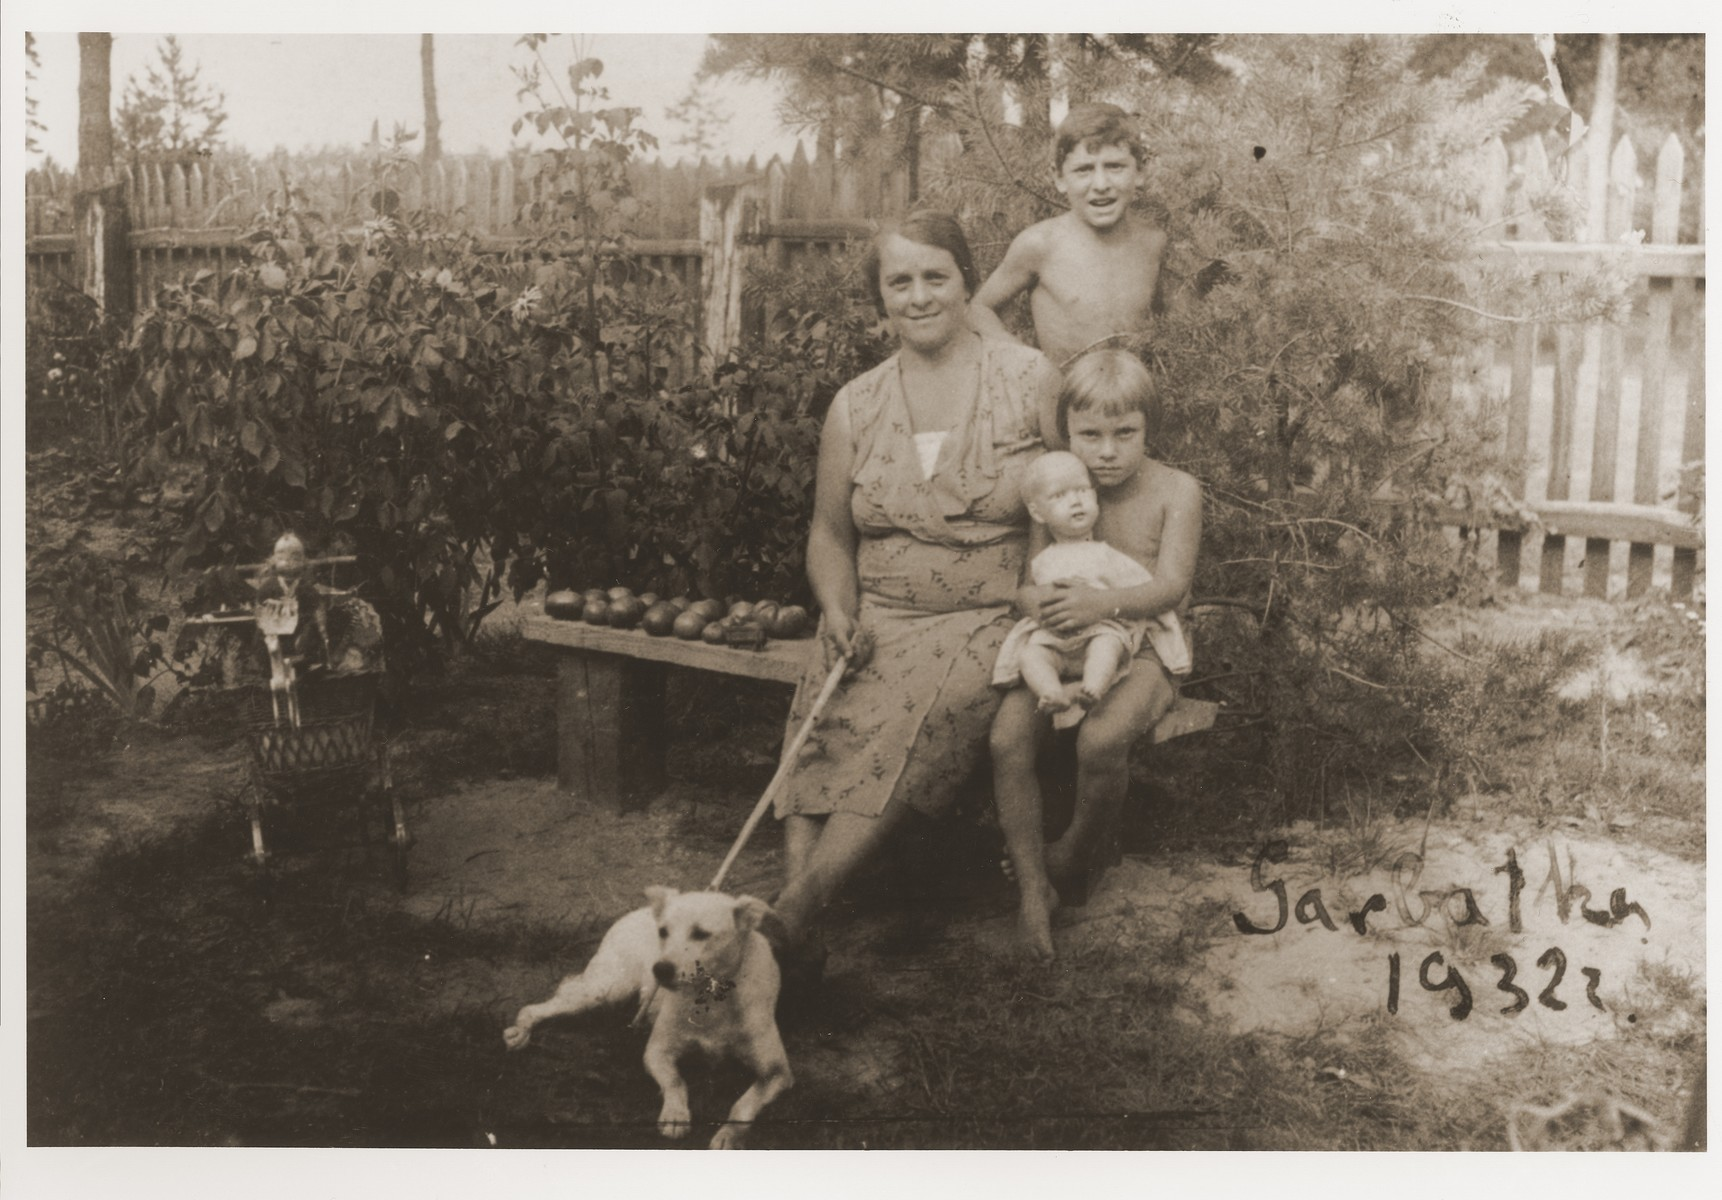 Ester Fiszman poses with her children, Julek and Saba, in the yard of their summer home.